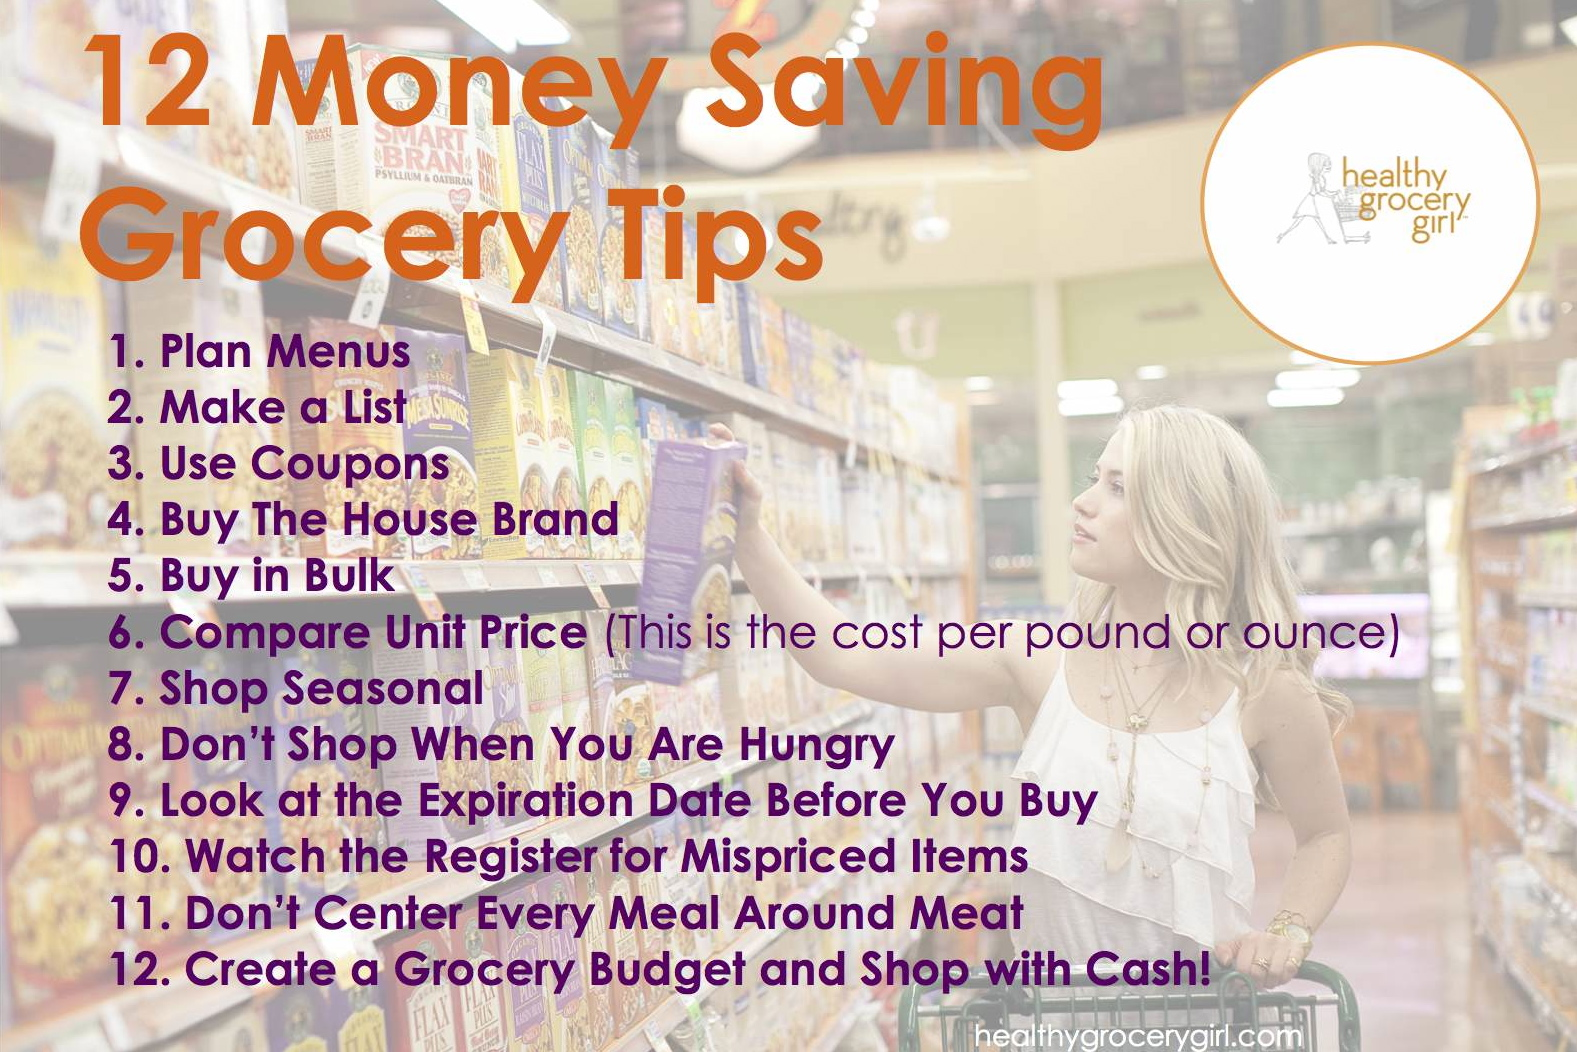 Currency tips